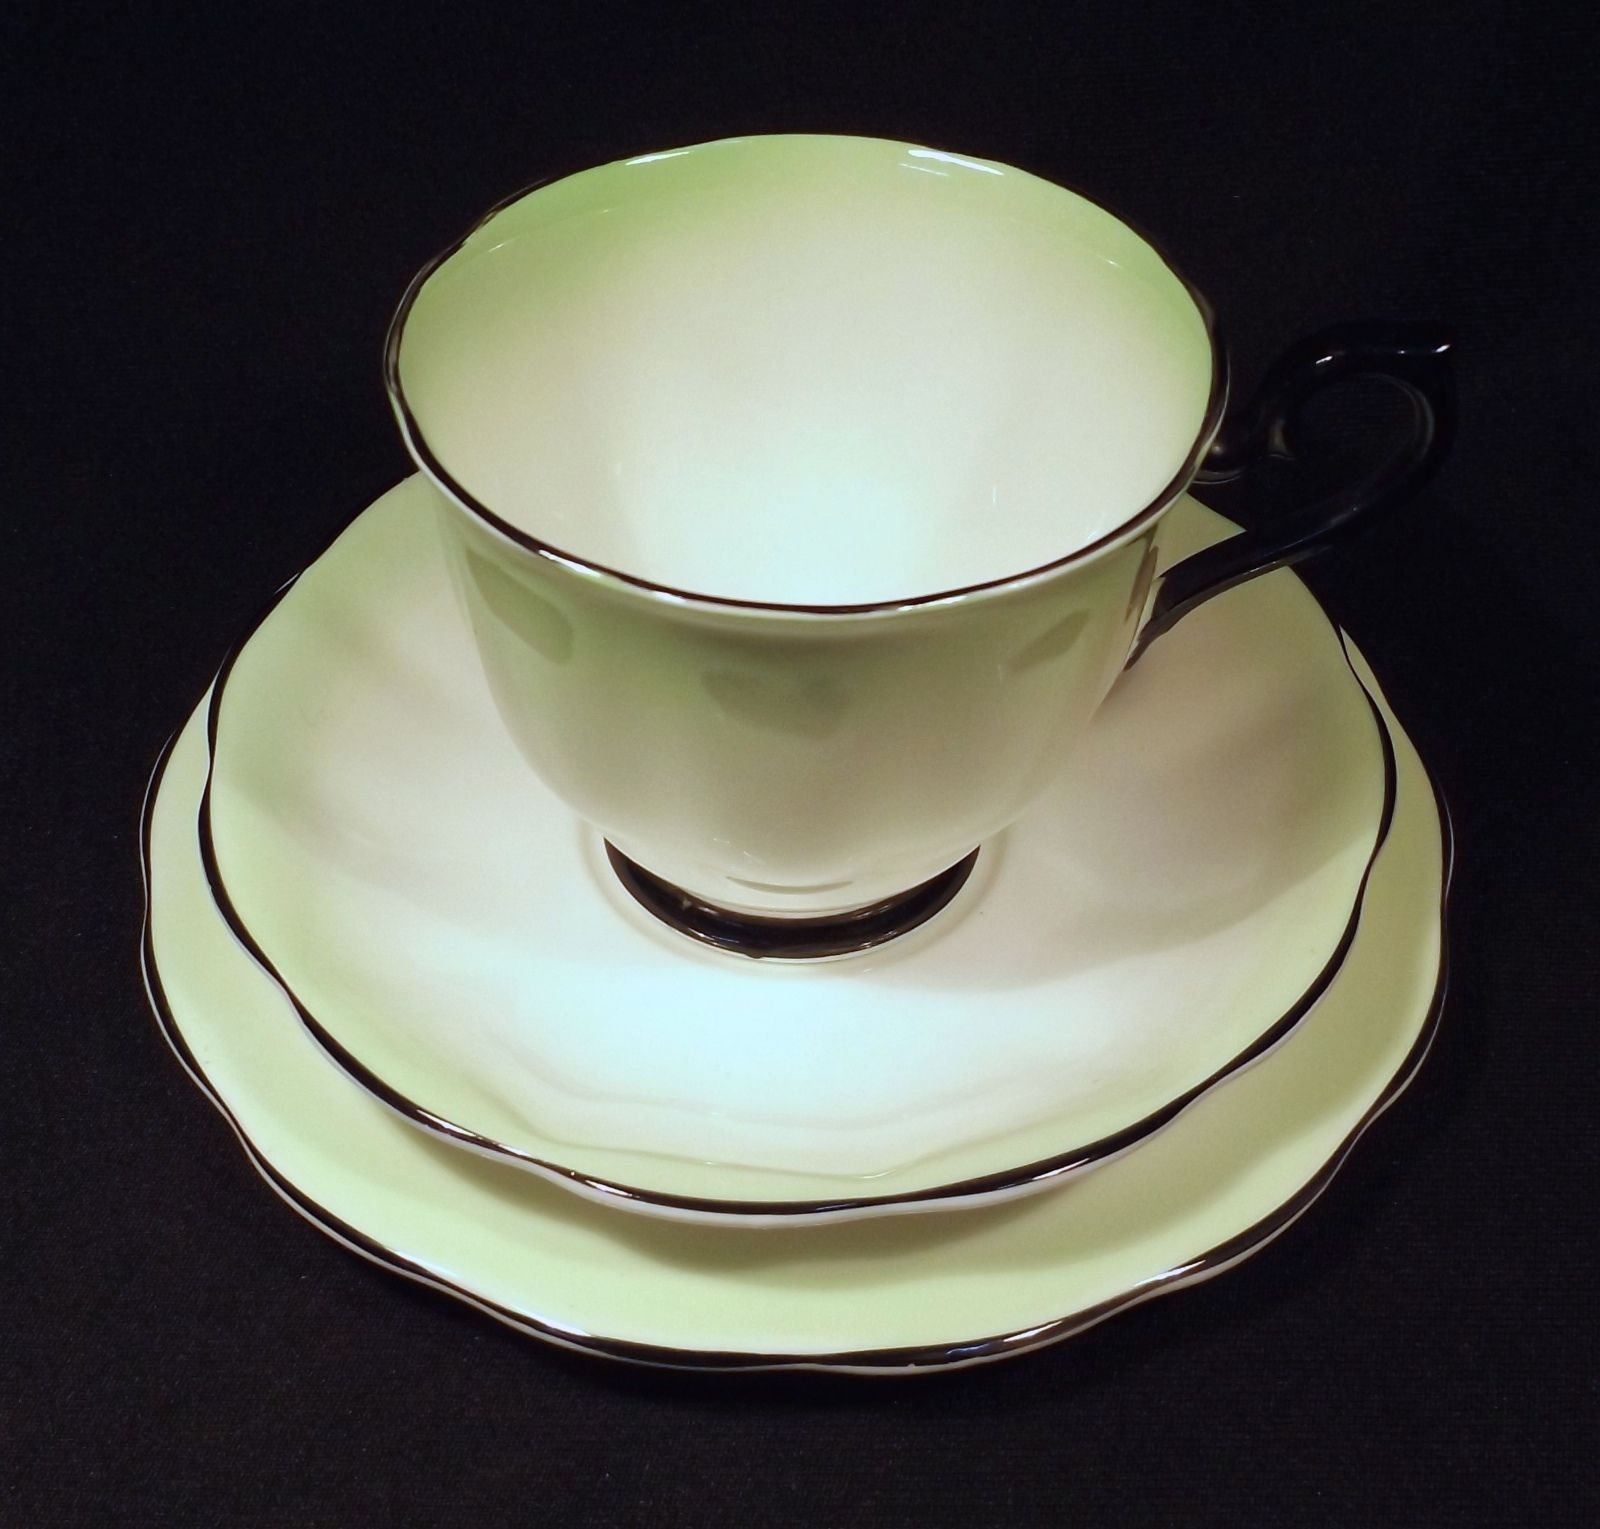 Royal albert bone china tea cup amp saucer winsome pattern ebay - 1950 S Royal Albert Bone China Trio Gradation Green To White With Contrasting Black Trim Adelaide